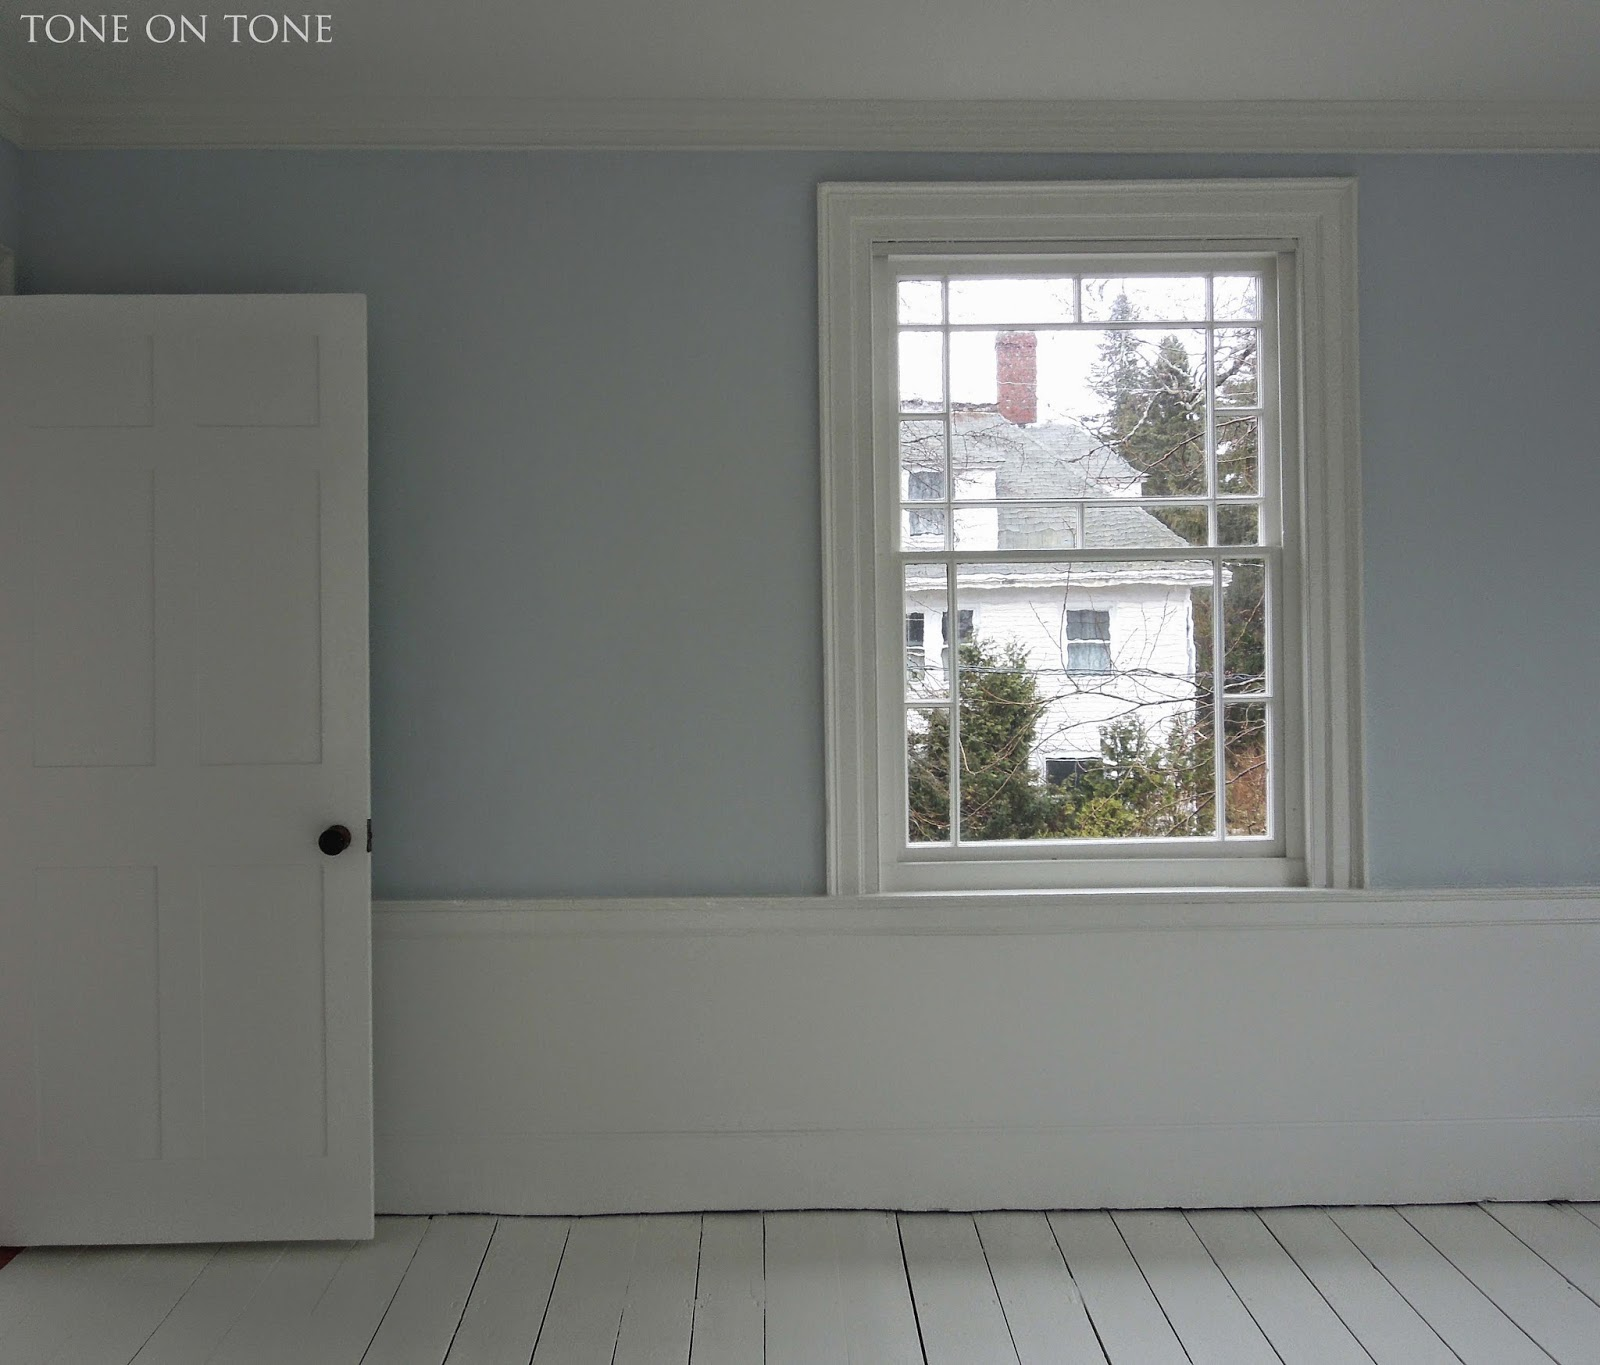 For Another Bedroom The Walls Are Painted Benjamin Moore Gray Sky A True Blue This Room Gets Endless Sunshine So Is Tempered By Bright